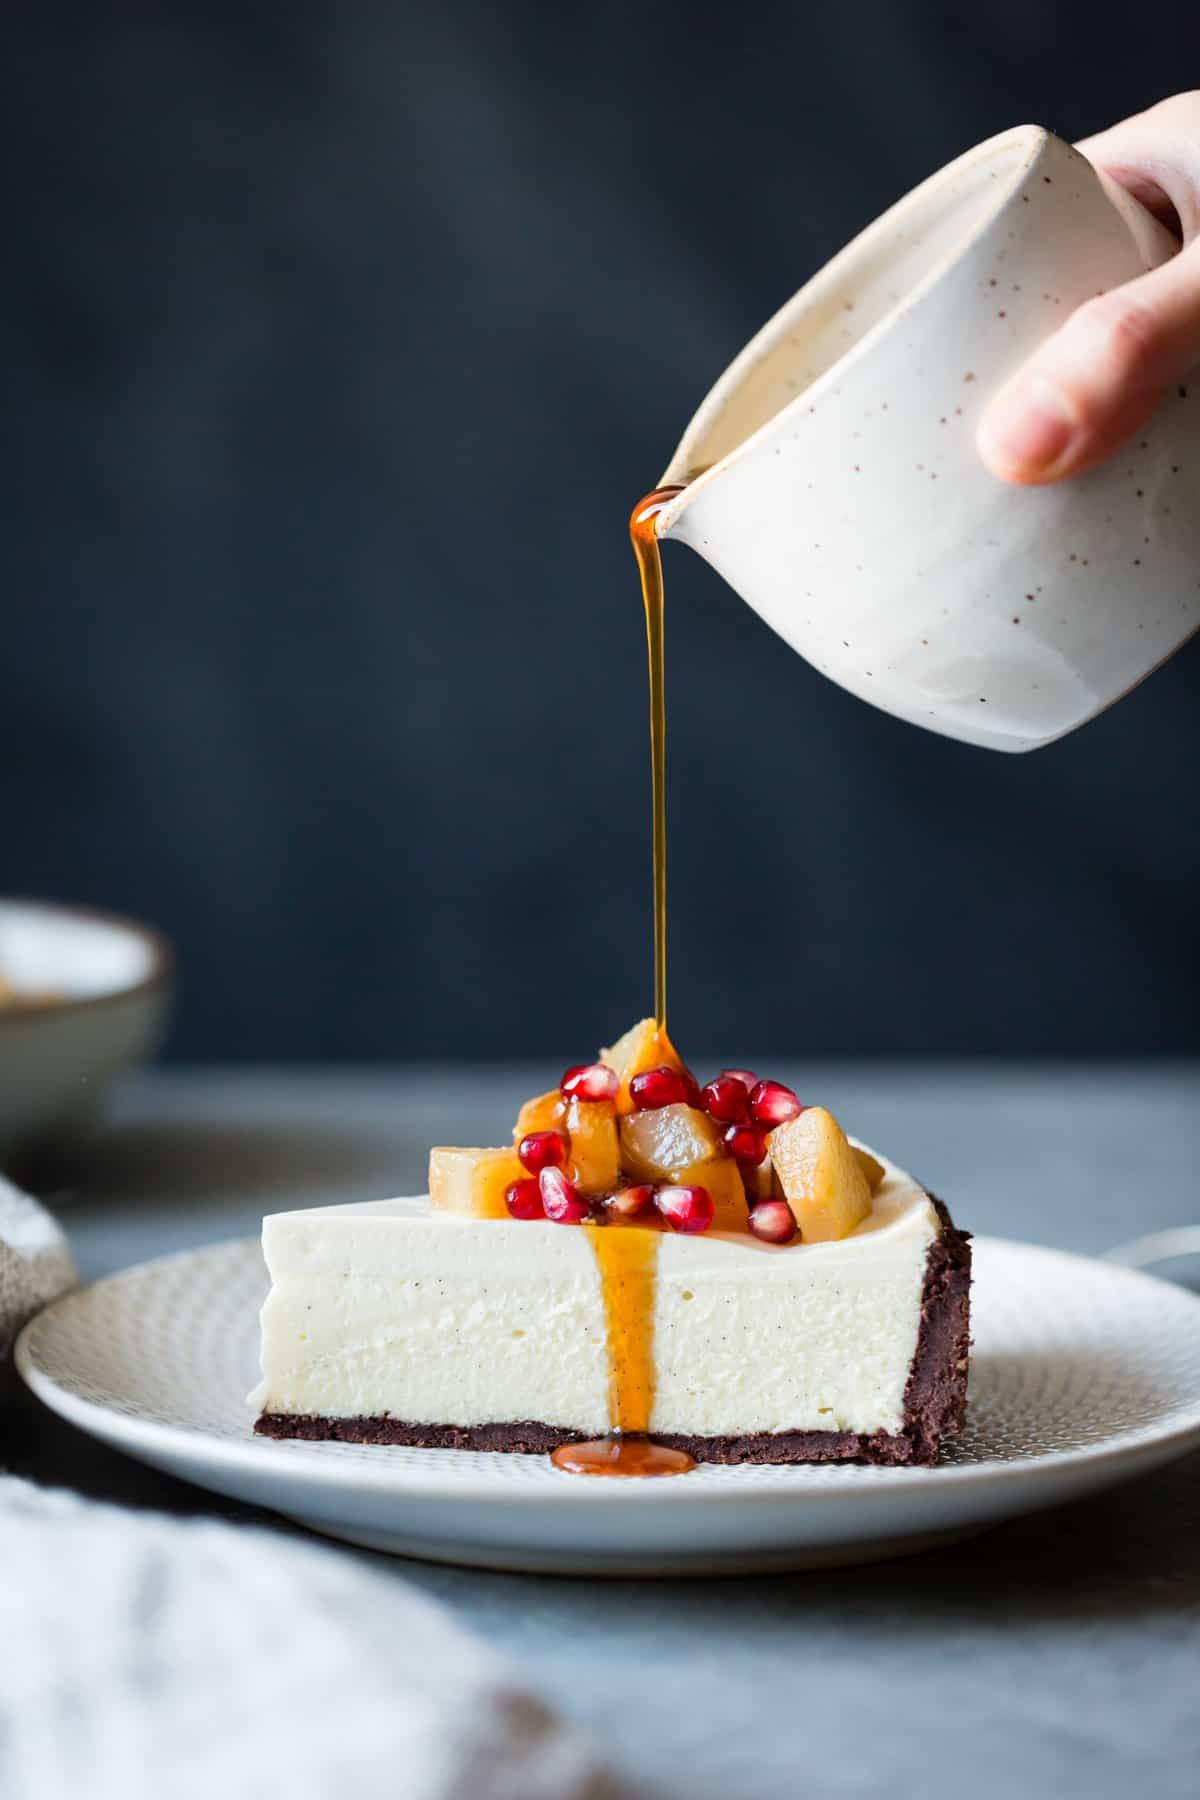 Chocolate Crusted Chvre Cheesecake With Earl Grey Poached